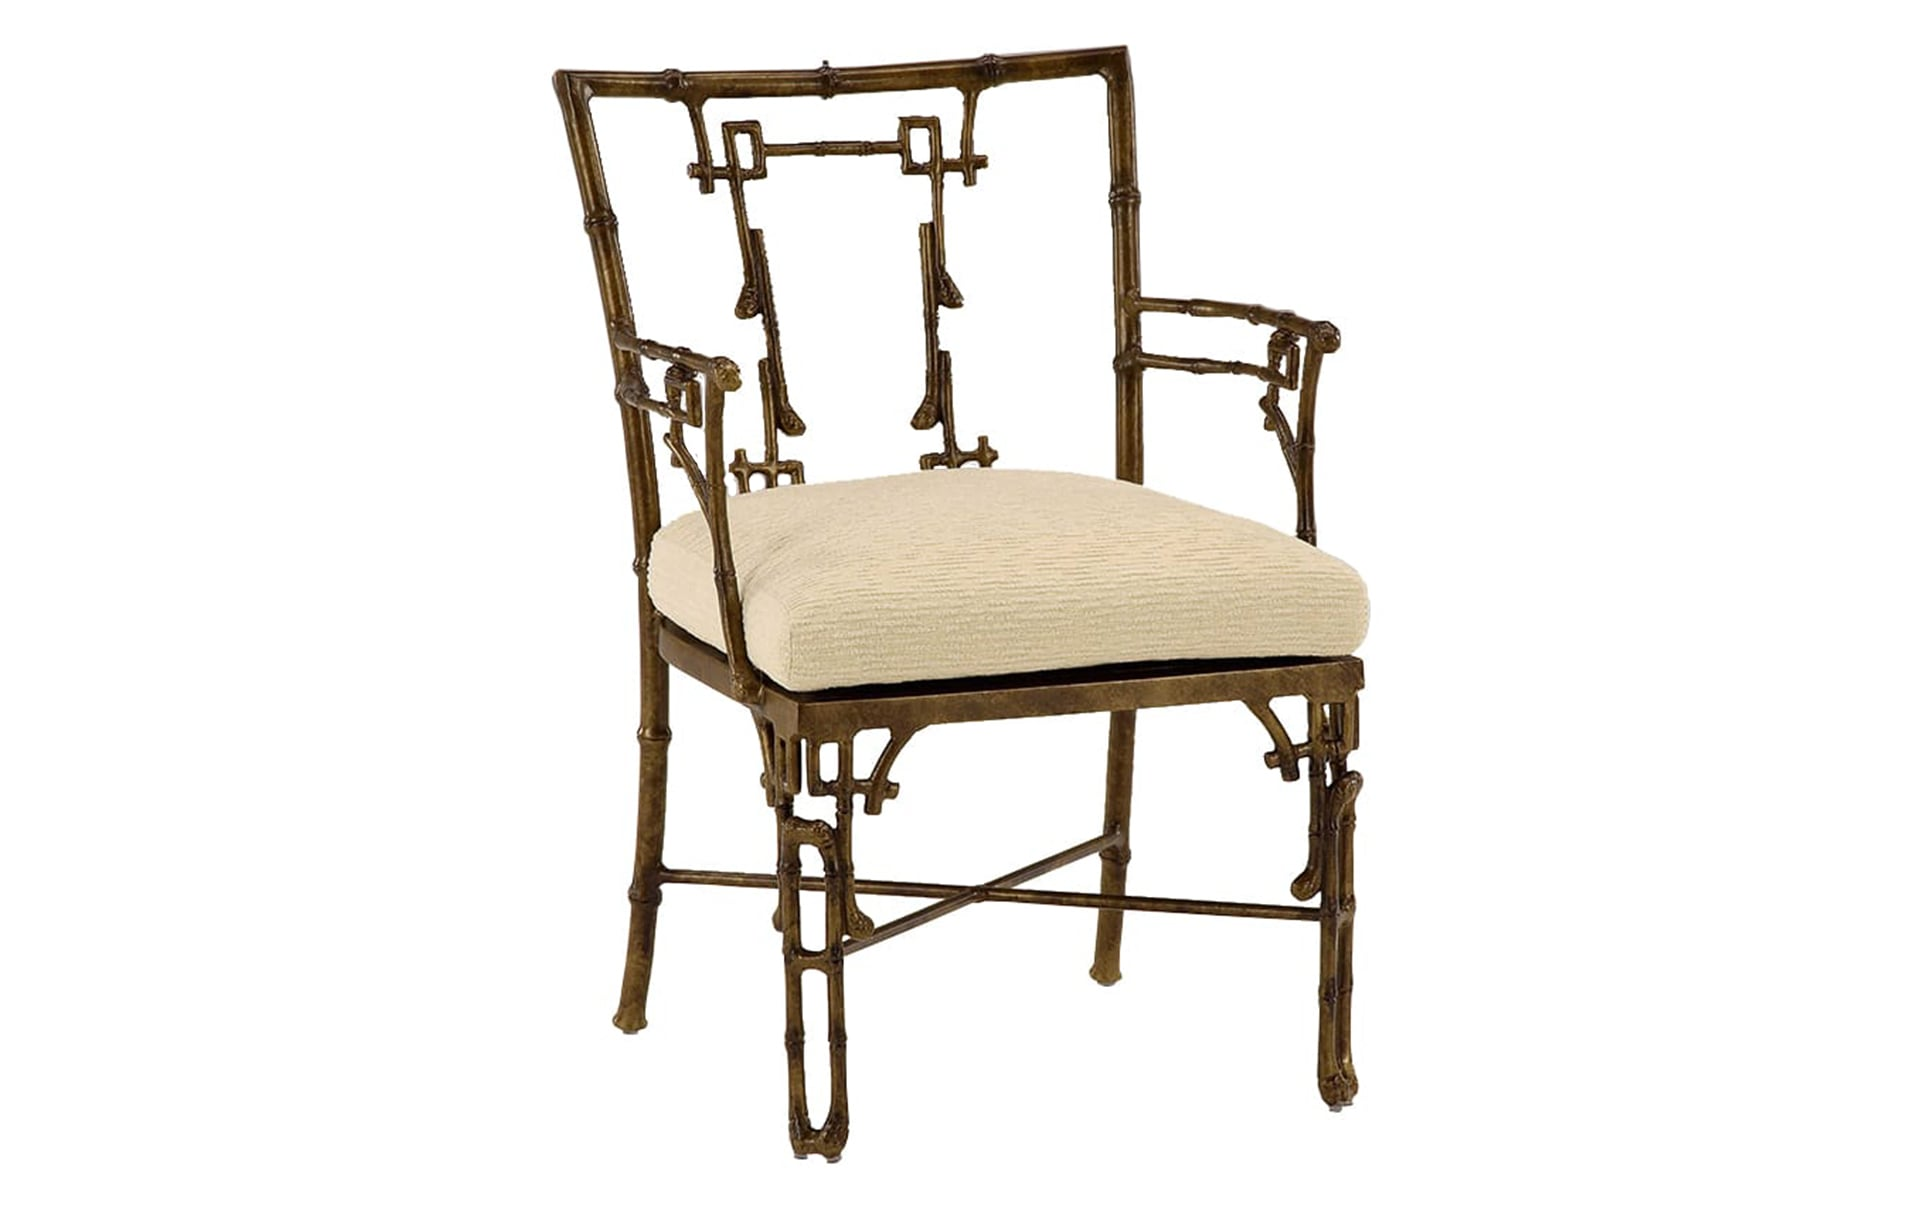 fretwork furniture. Bamboo Dining Chair With Fretwork Furniture